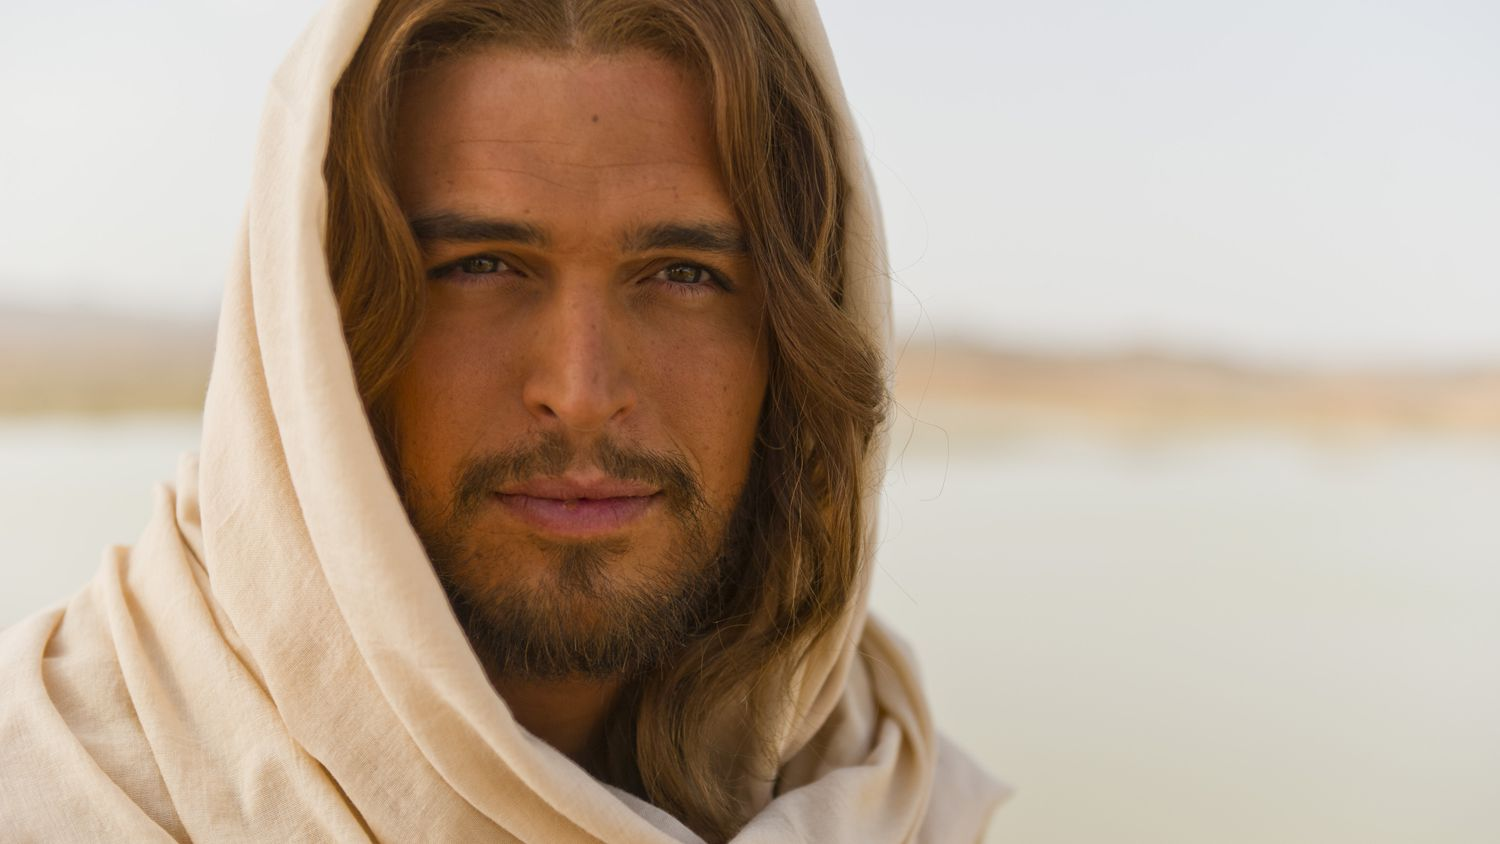 Why Was Jesus Christ Called the Son of God?